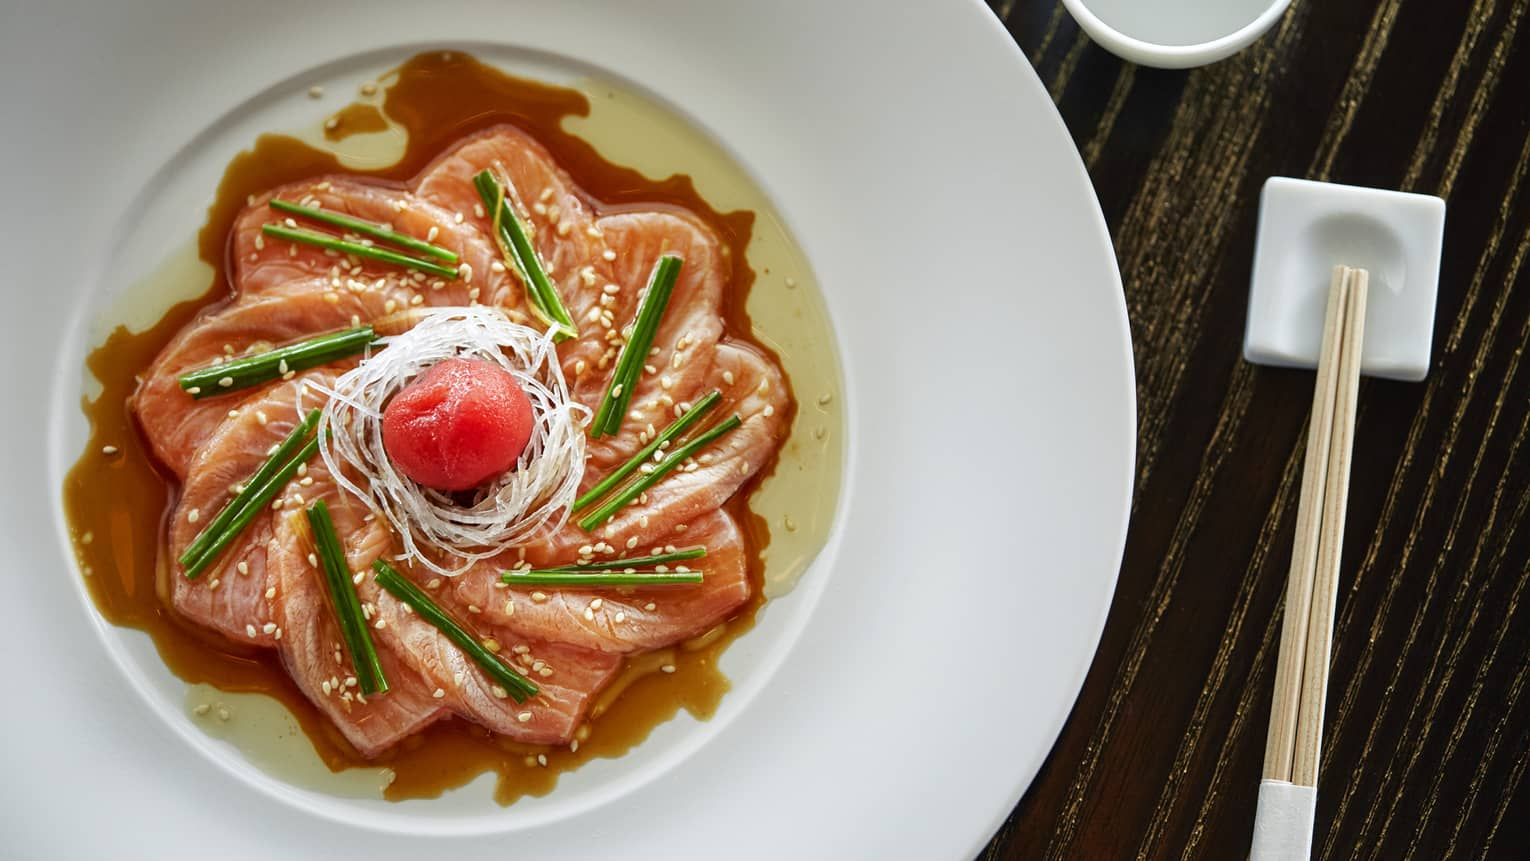 Aerial view of sashimi arranged as flower in dish, sauce and garnish